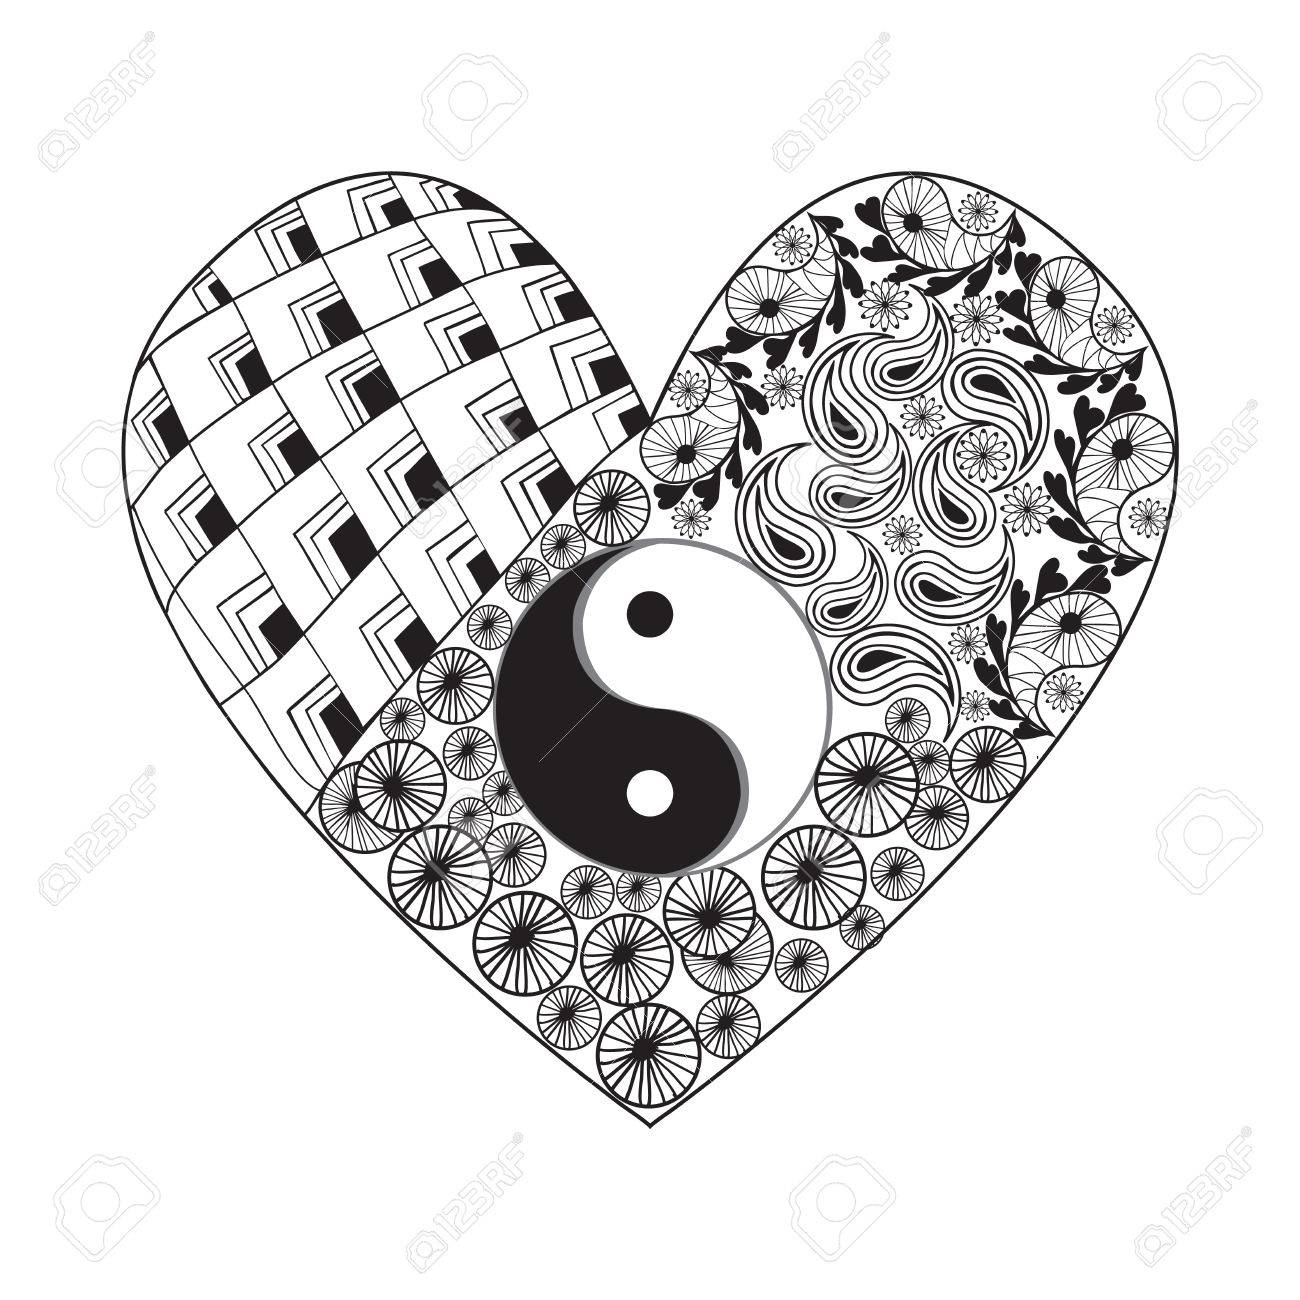 Yin Yang Drawing Designs At Getdrawings Com Free For Personal Use